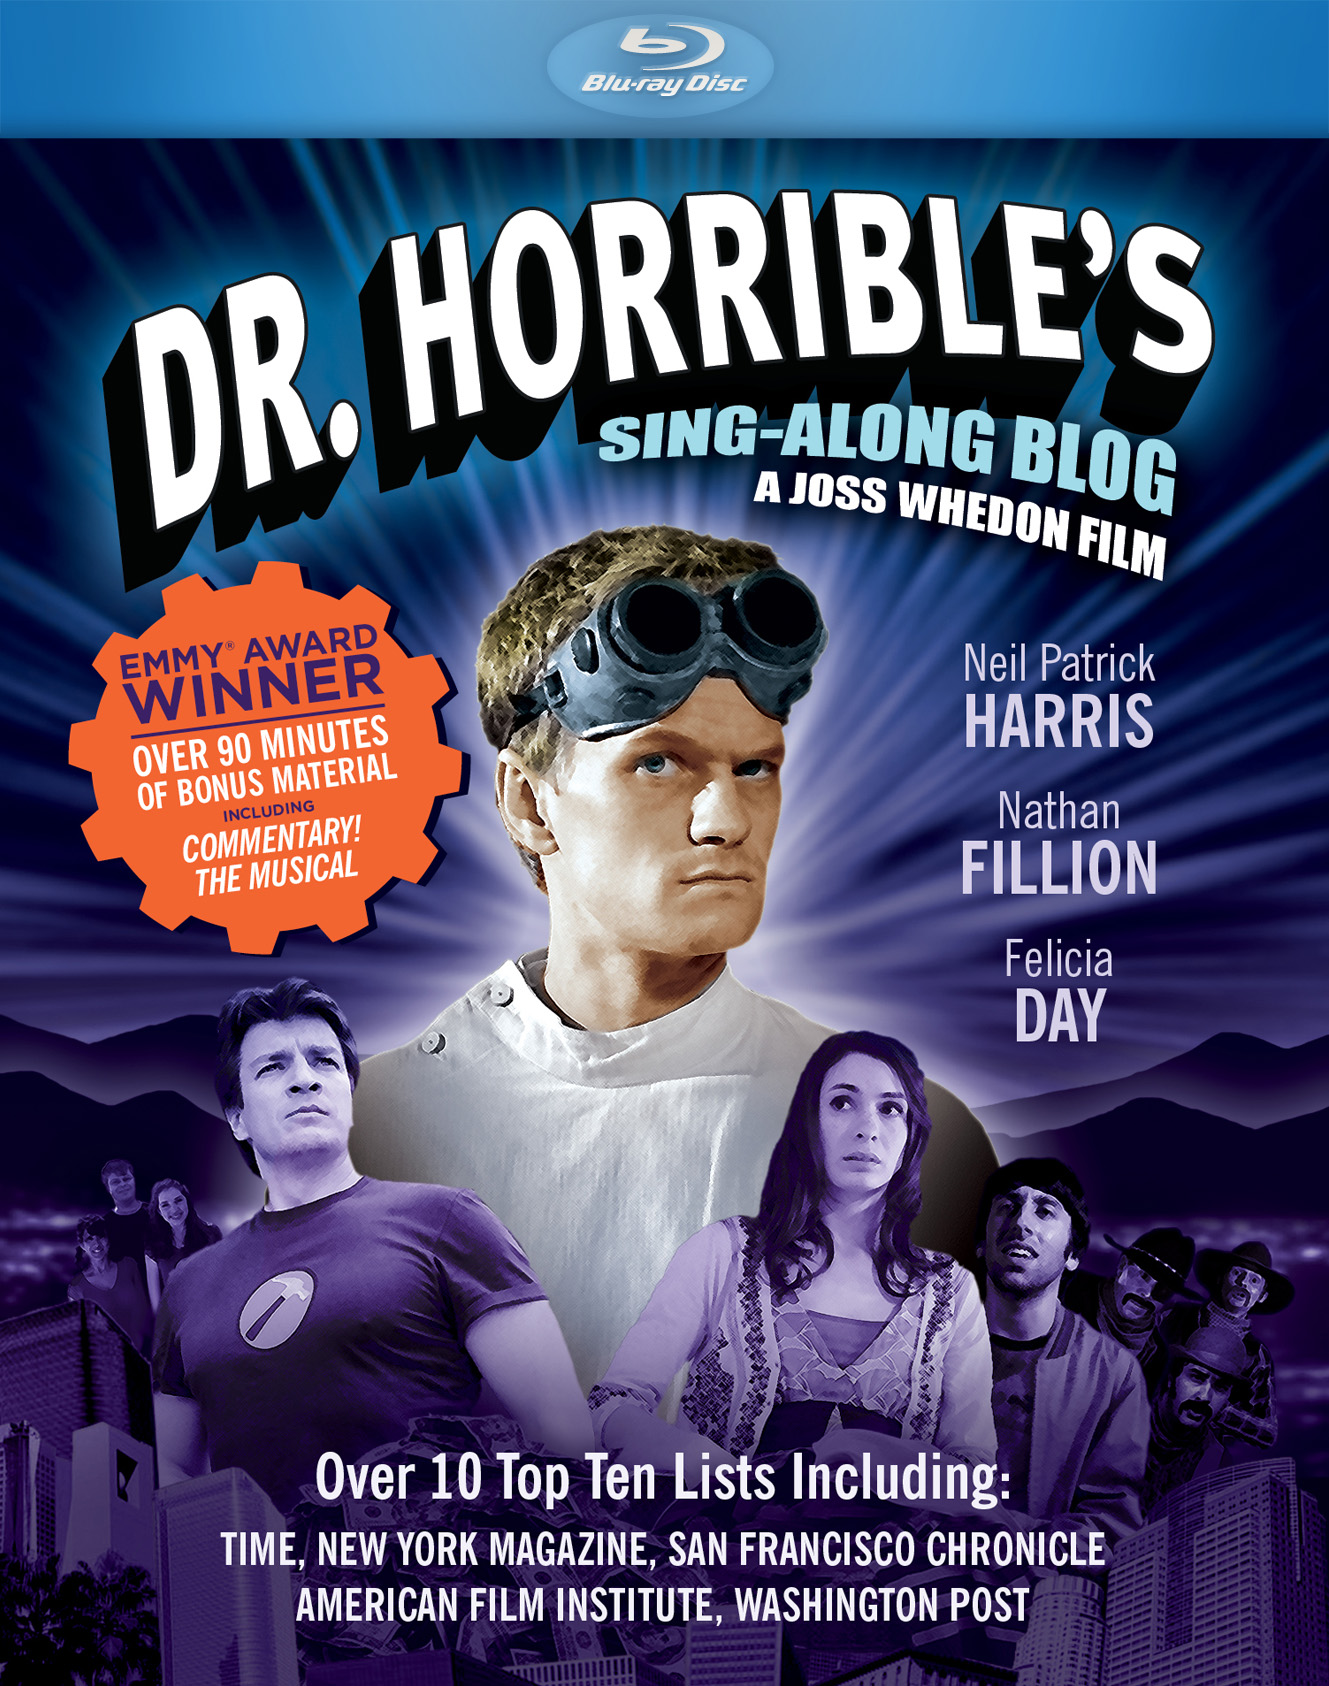 horrible doctor horrible Act i blog #1 dr horrible ah hahahaha ah ha haaaa a haaaa so that's you know coming along i'm working with a vocal coach strengthening the ahhaa.